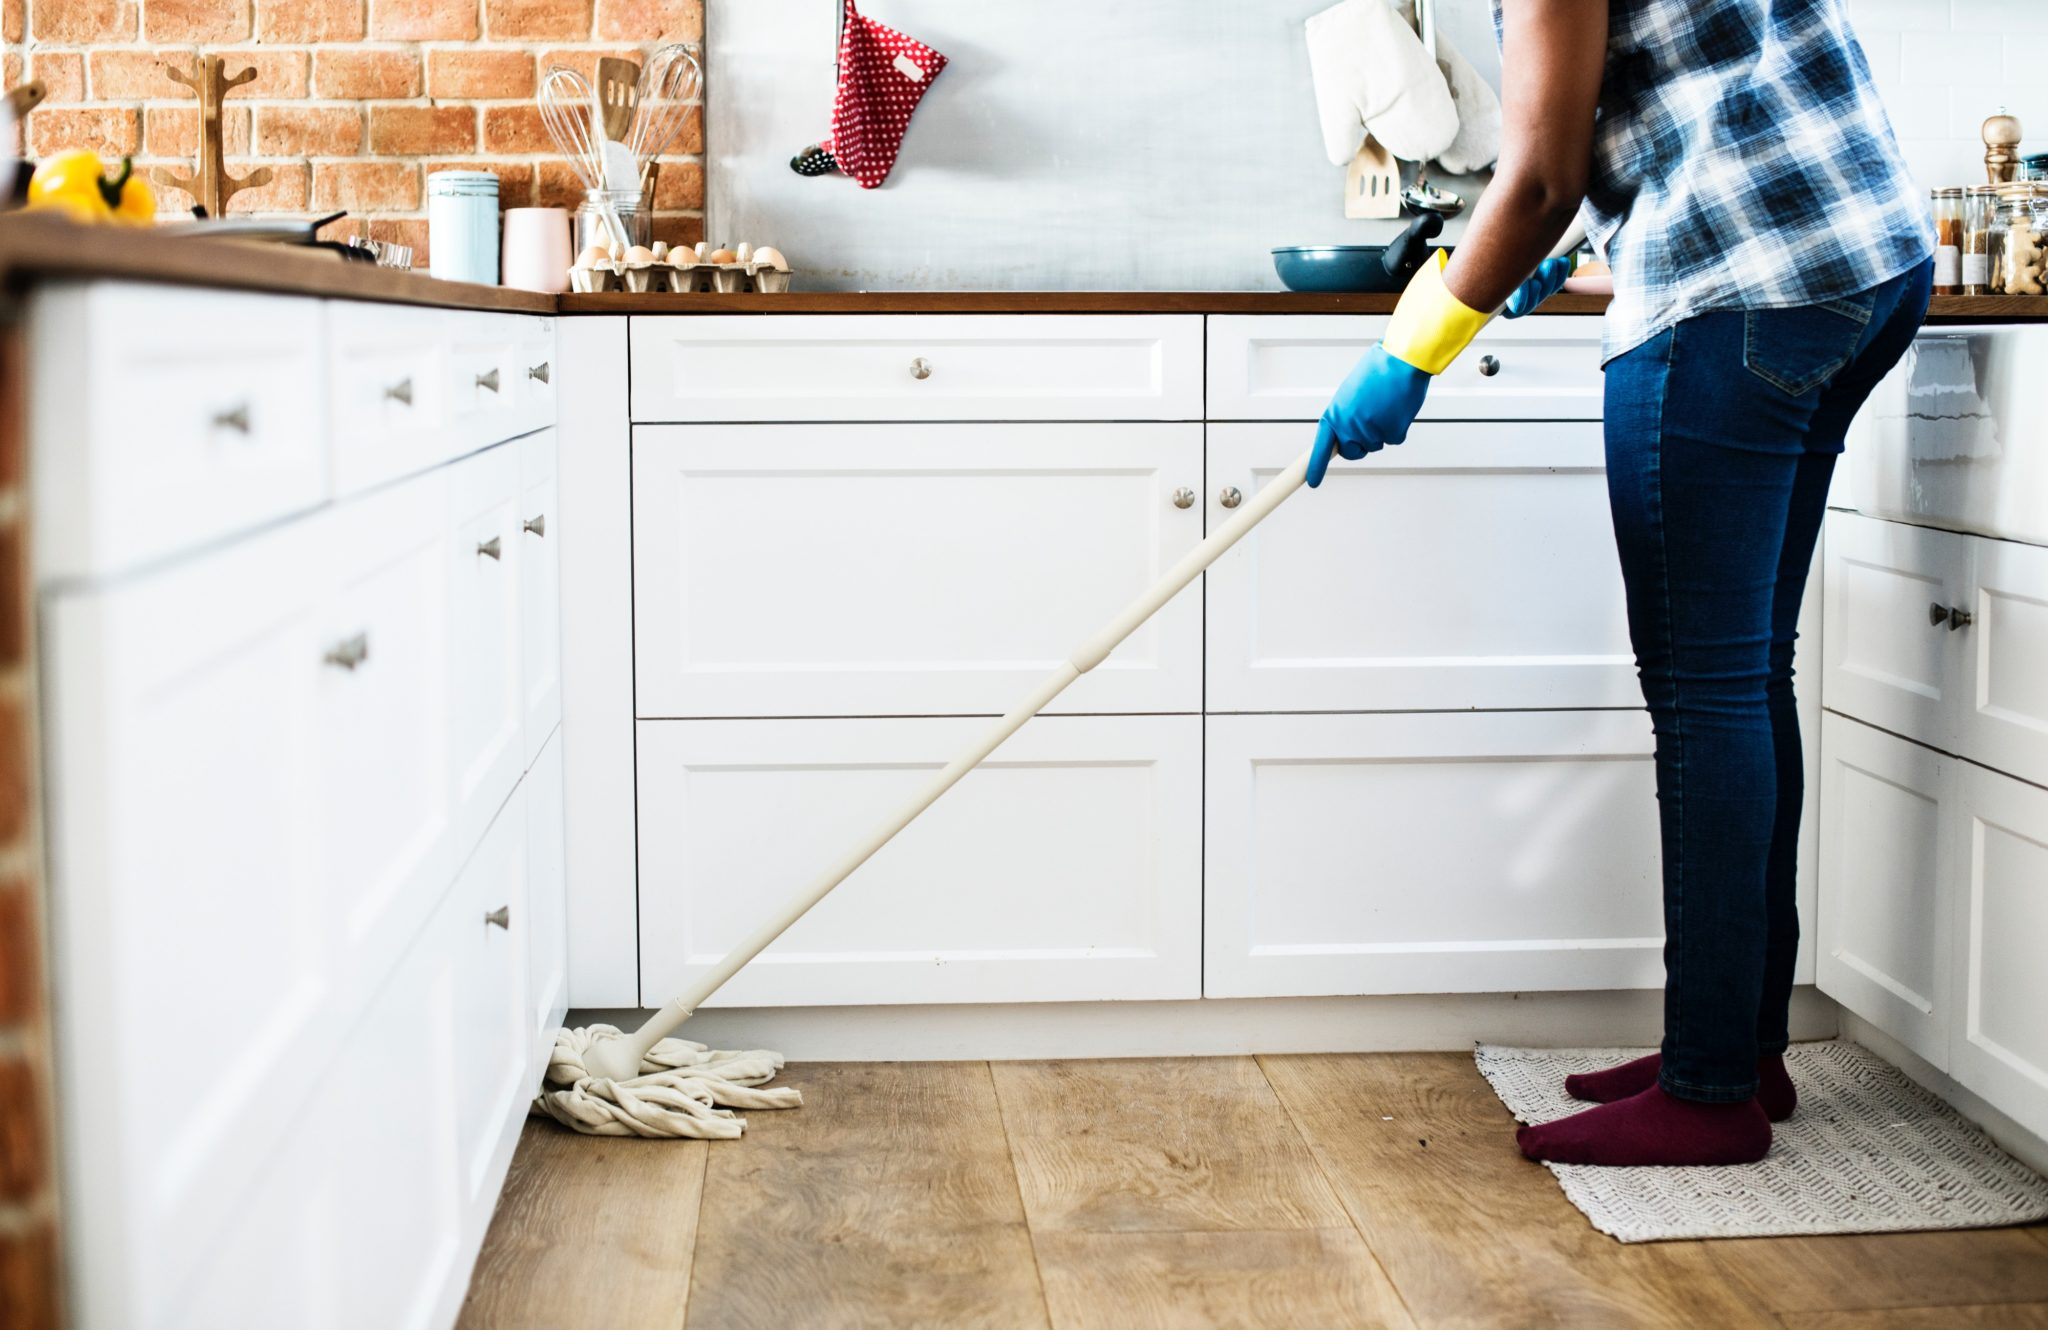 a person using a mop to clean a wooden floor with white units in the background